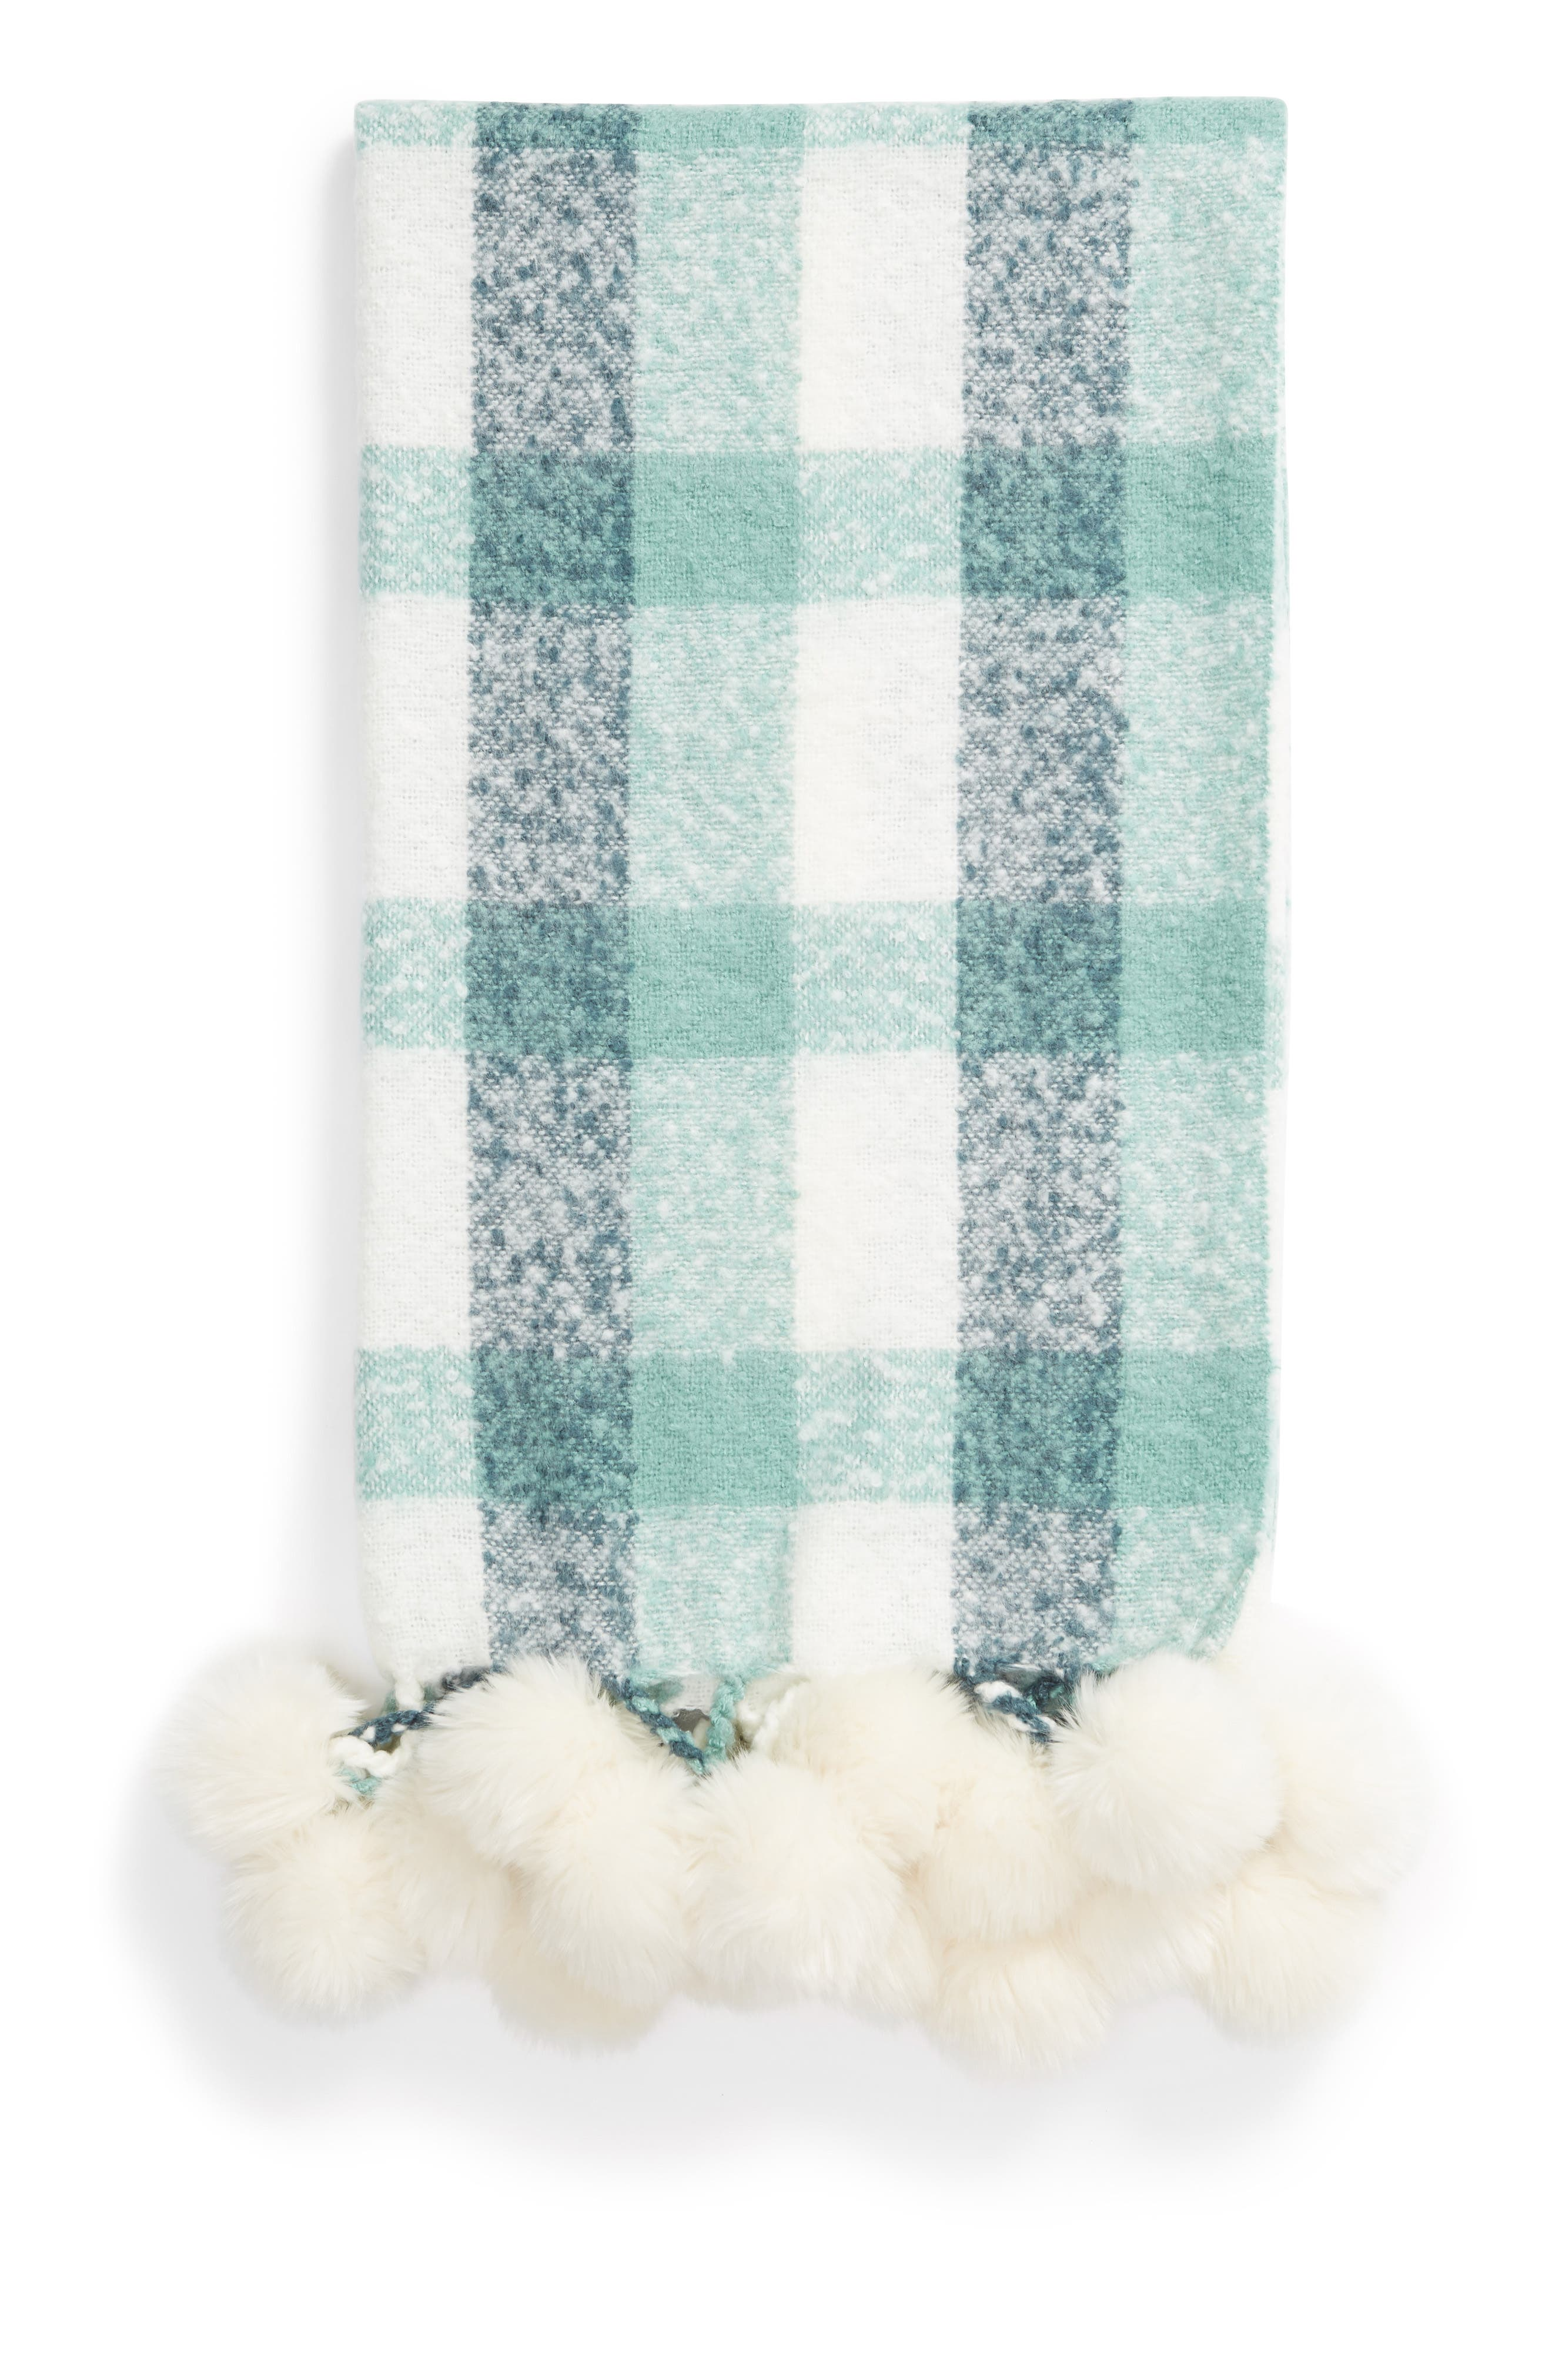 NORDSTROM AT HOME, Faux Fur Throw, Main thumbnail 1, color, GREEN CANTON MULTI